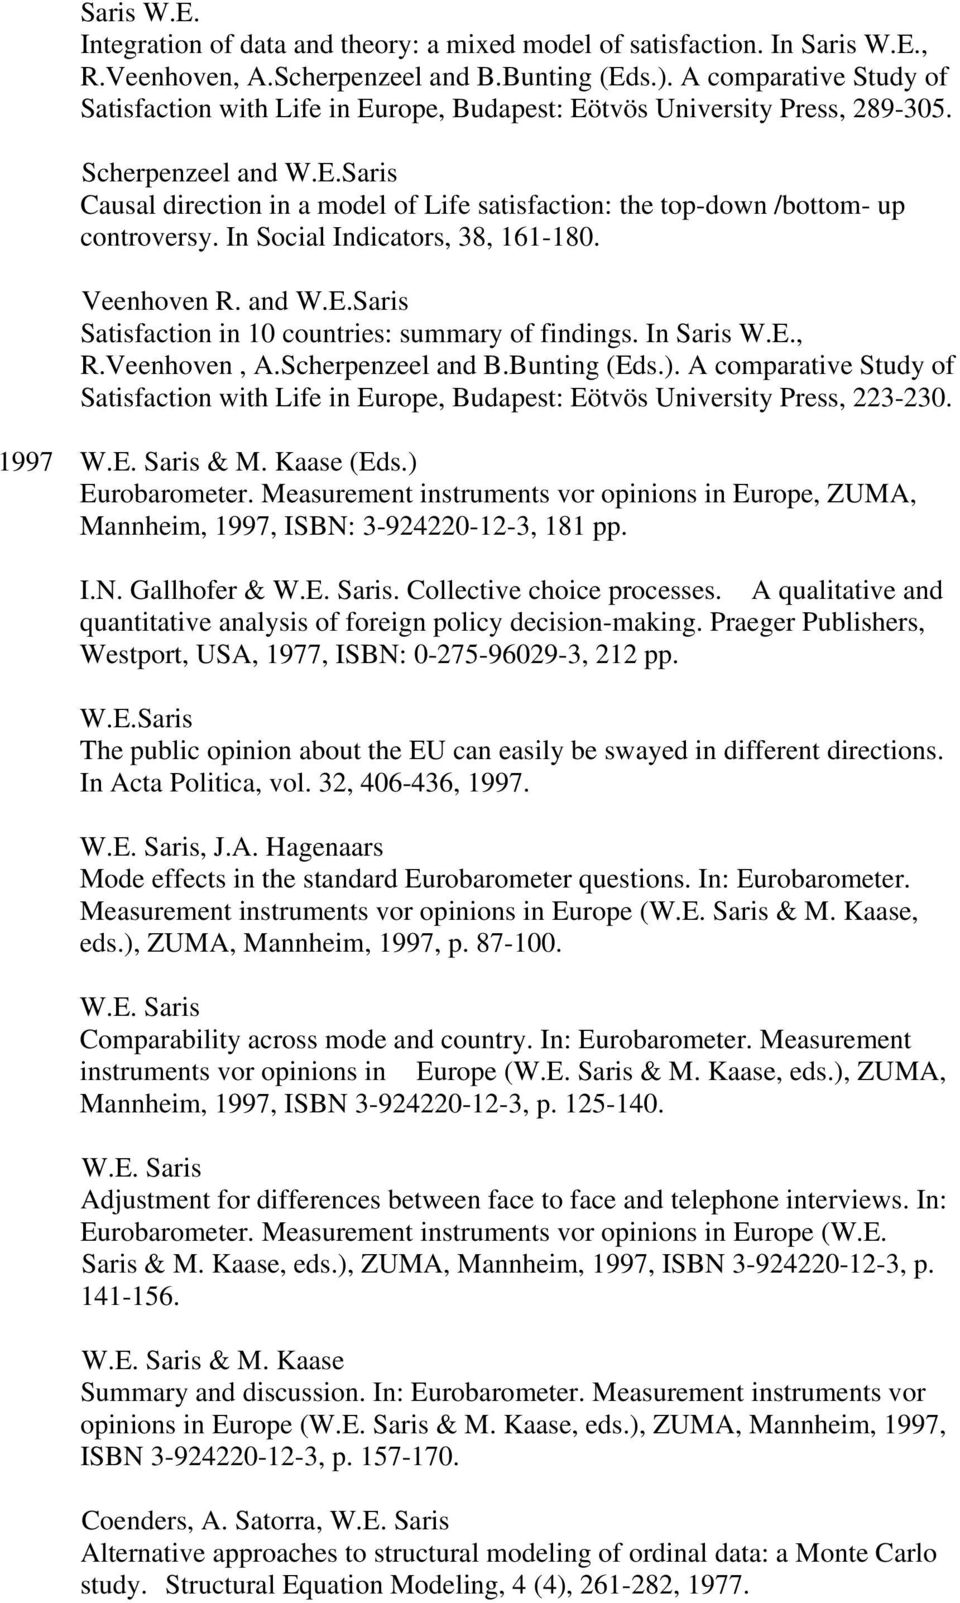 In Social Indicators, 38, 161-180. Veenhoven R. and W.E.Saris Satisfaction in 10 countries: summary of findings. In Saris W.E., R.Veenhoven, A.Scherpenzeel and B.Bunting (Eds.).